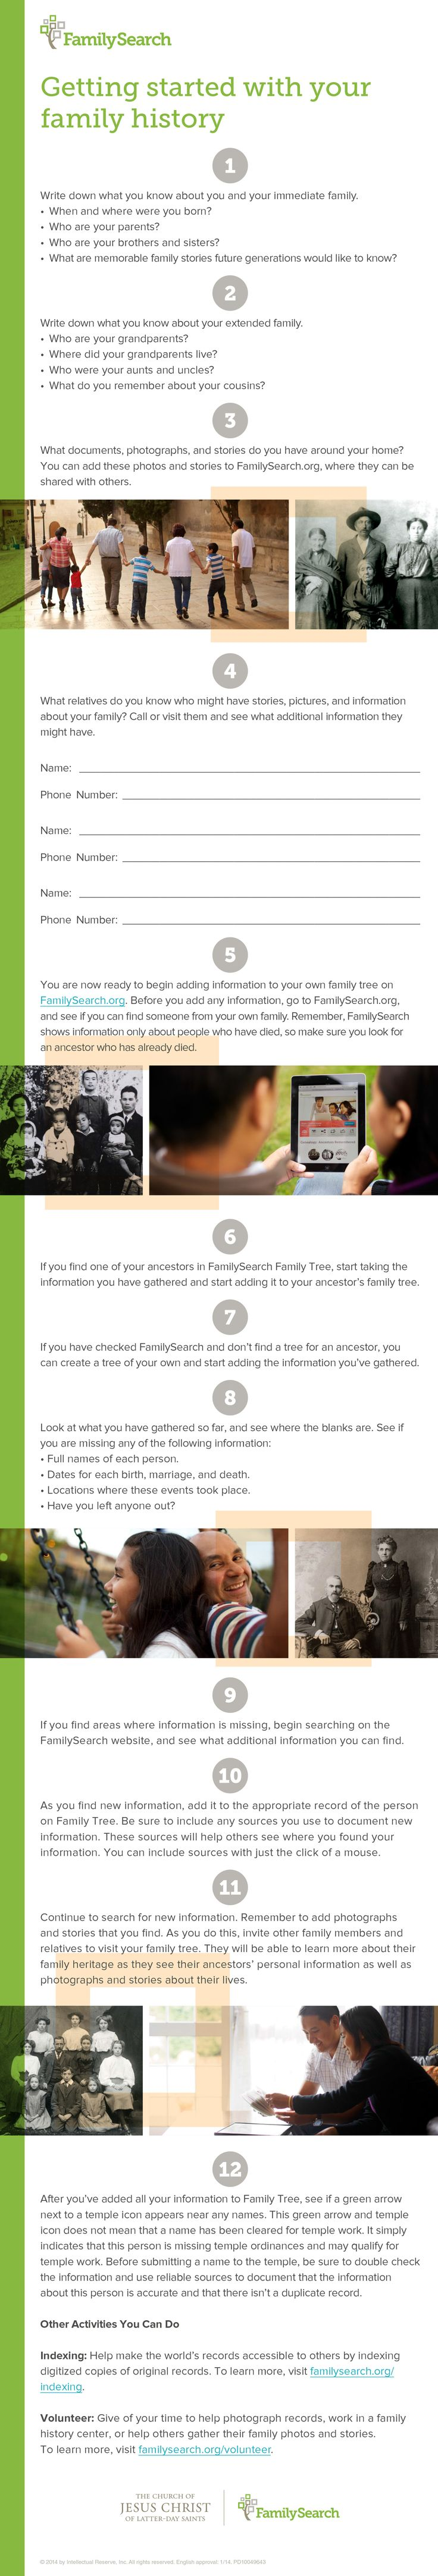 12 Steps to Get Started with Family History.